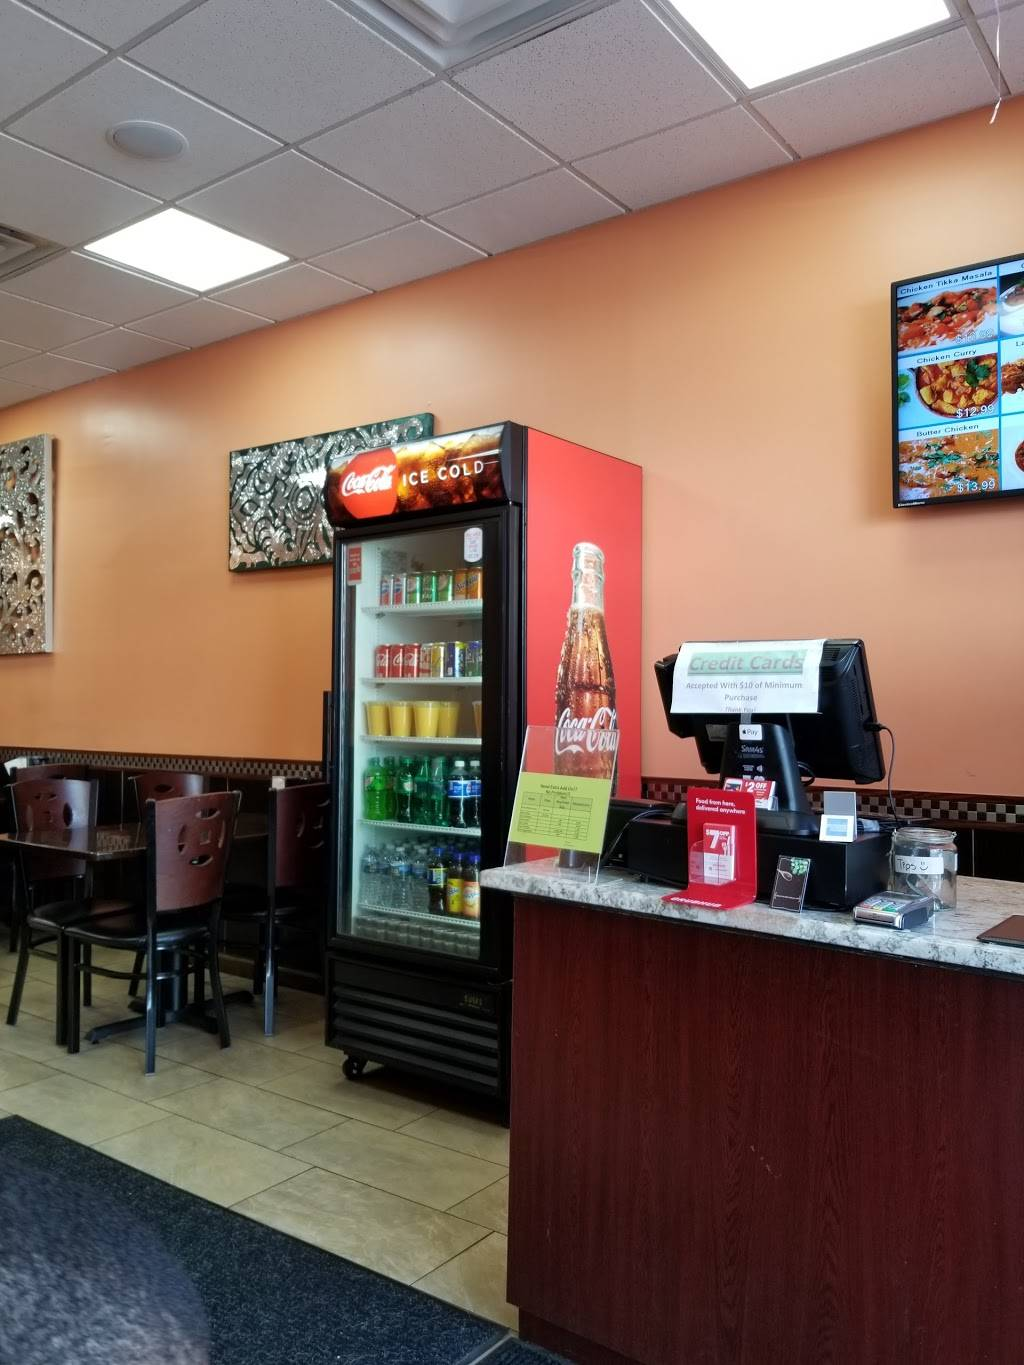 Maroosh Halal Cuisine | restaurant | 88 S 69th St, Upper Darby, PA 19082, USA | 4844664313 OR +1 484-466-4313